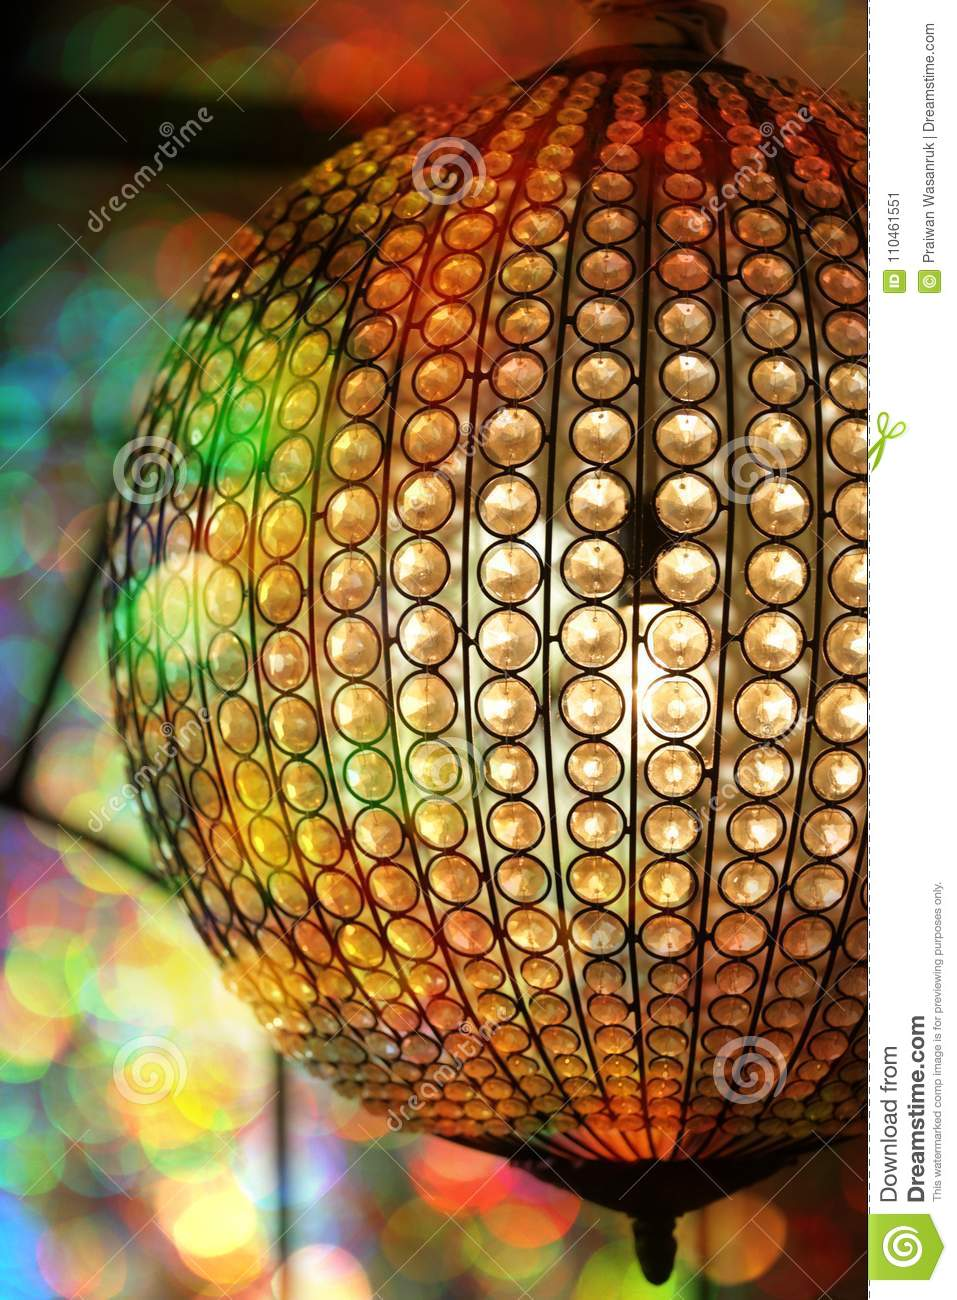 Elegant Crystal Ball Chandelier Stock Image Image Of Creative Green 110461551